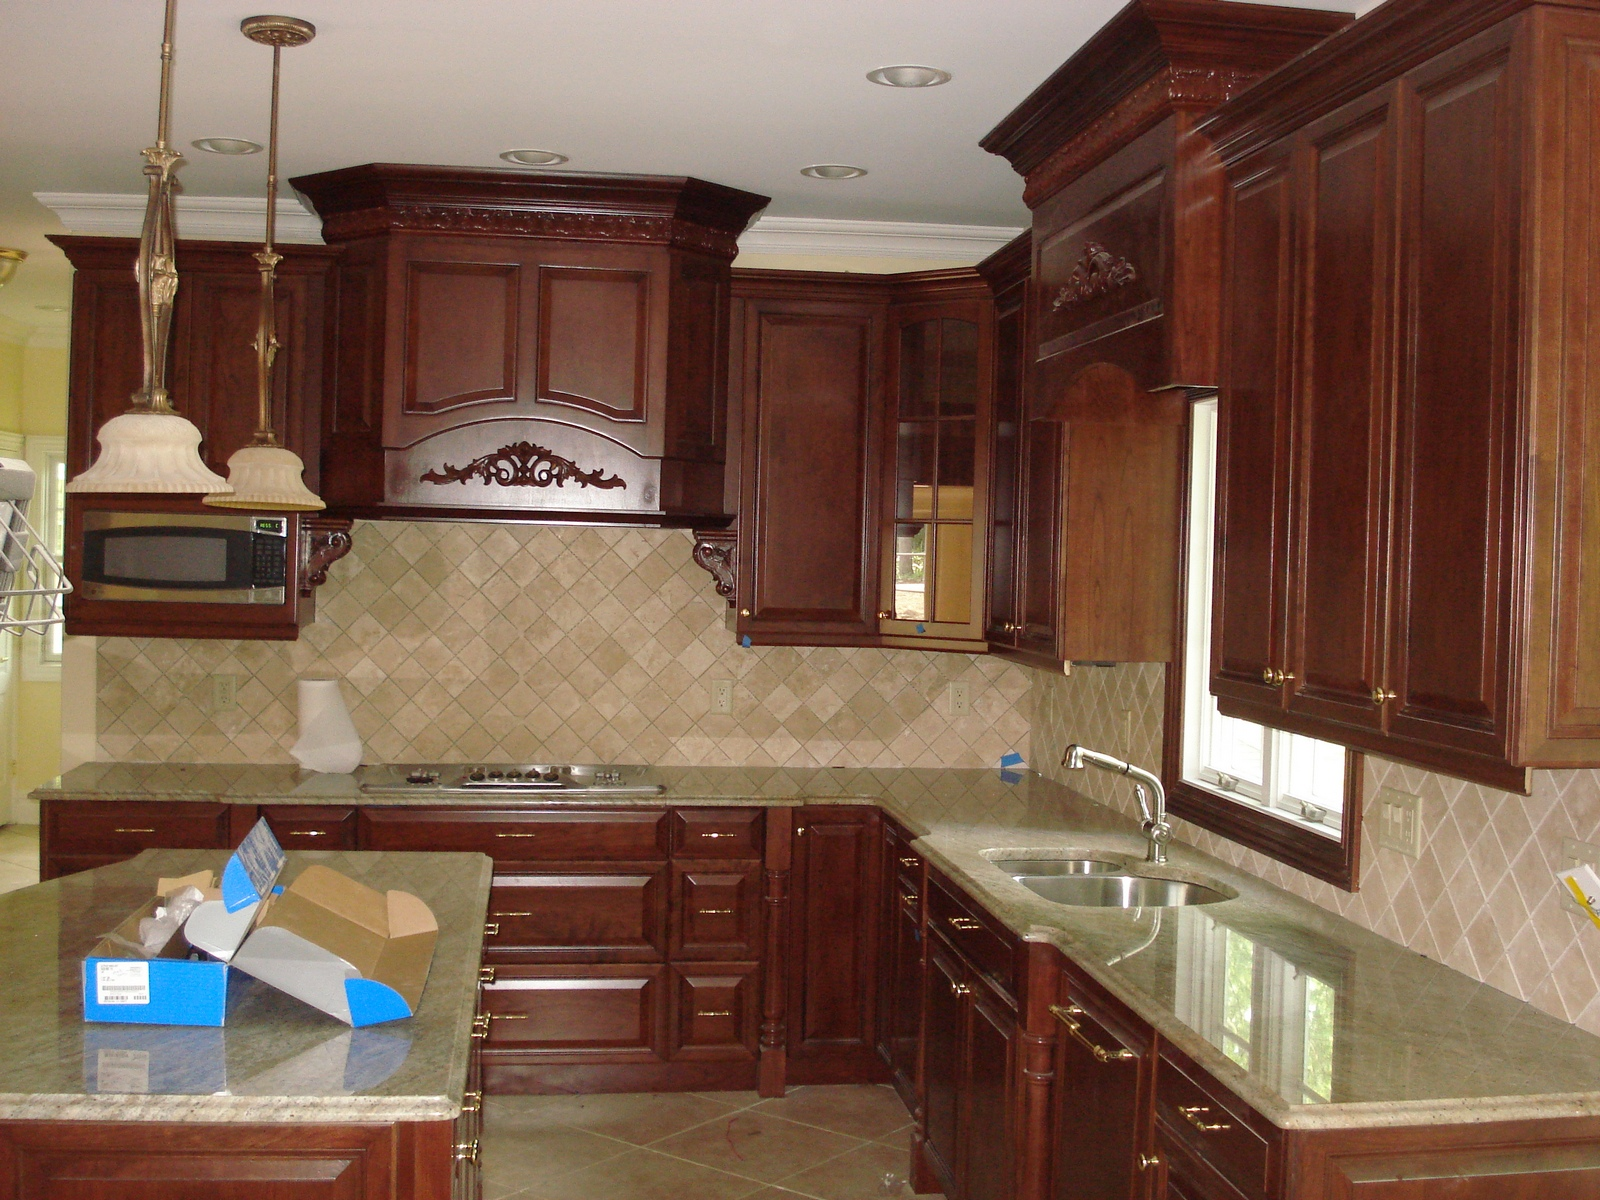 decorative molding kitchen cabinets delta cassidy faucet by crown nj